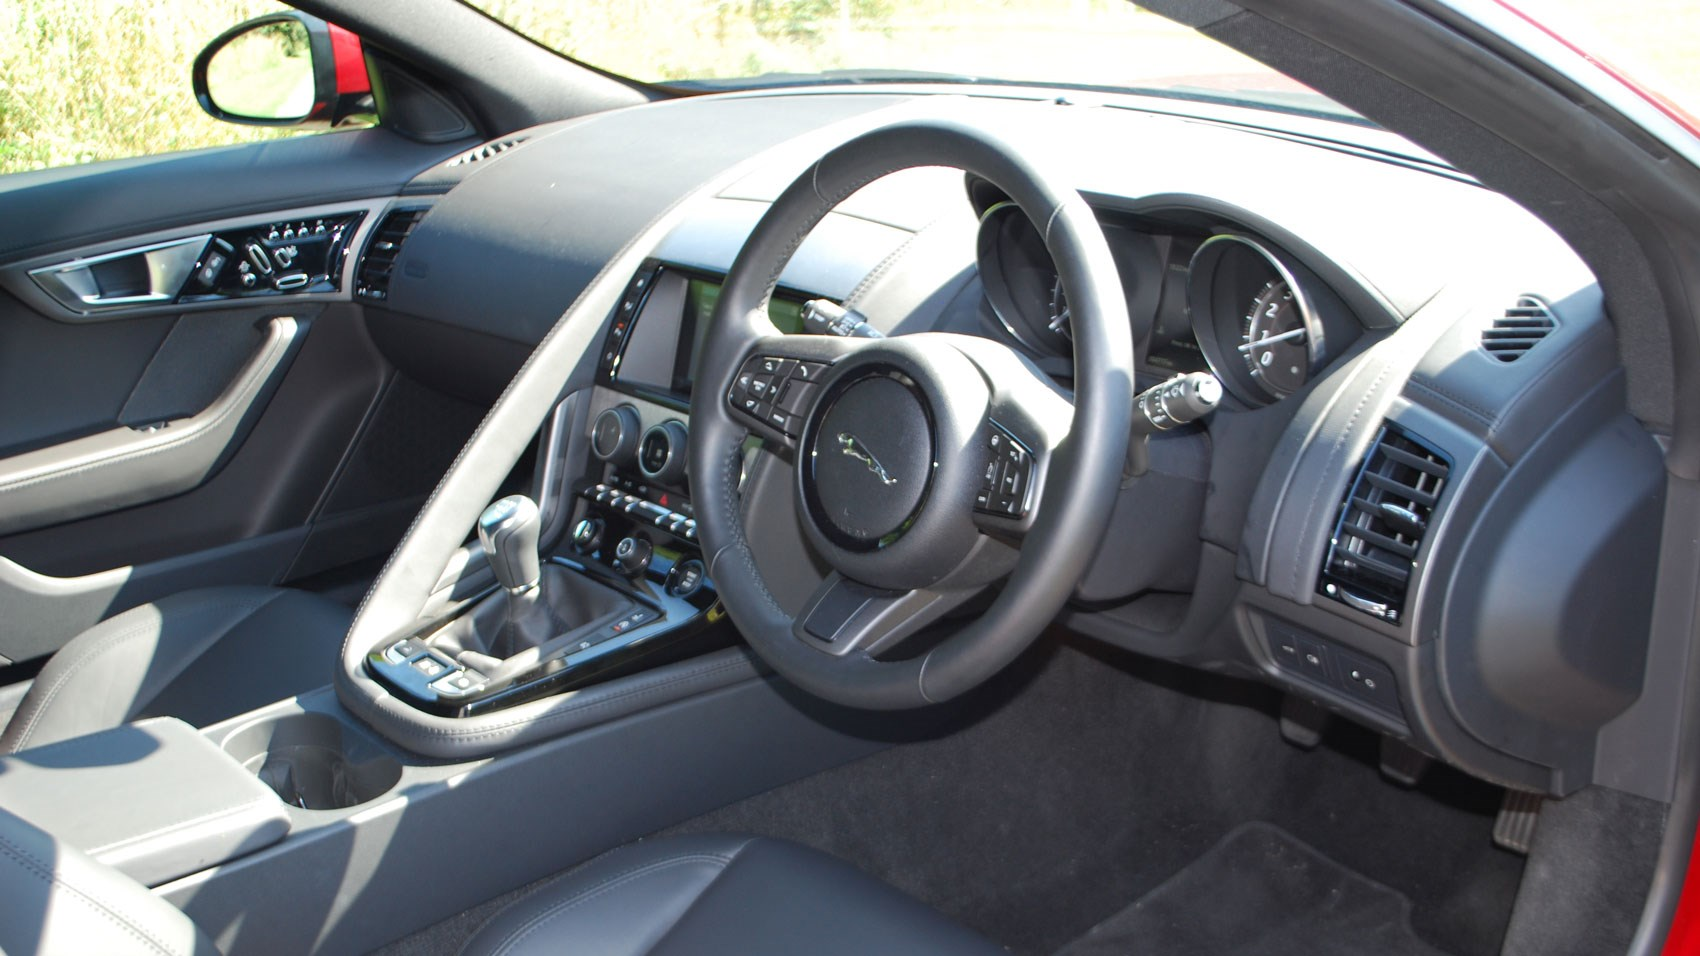 Jaguar F Type 30 V6 Manual 2015 Review Car Magazine 4 0 V8 Engine Diagrams Cabin Of A Stick Shift